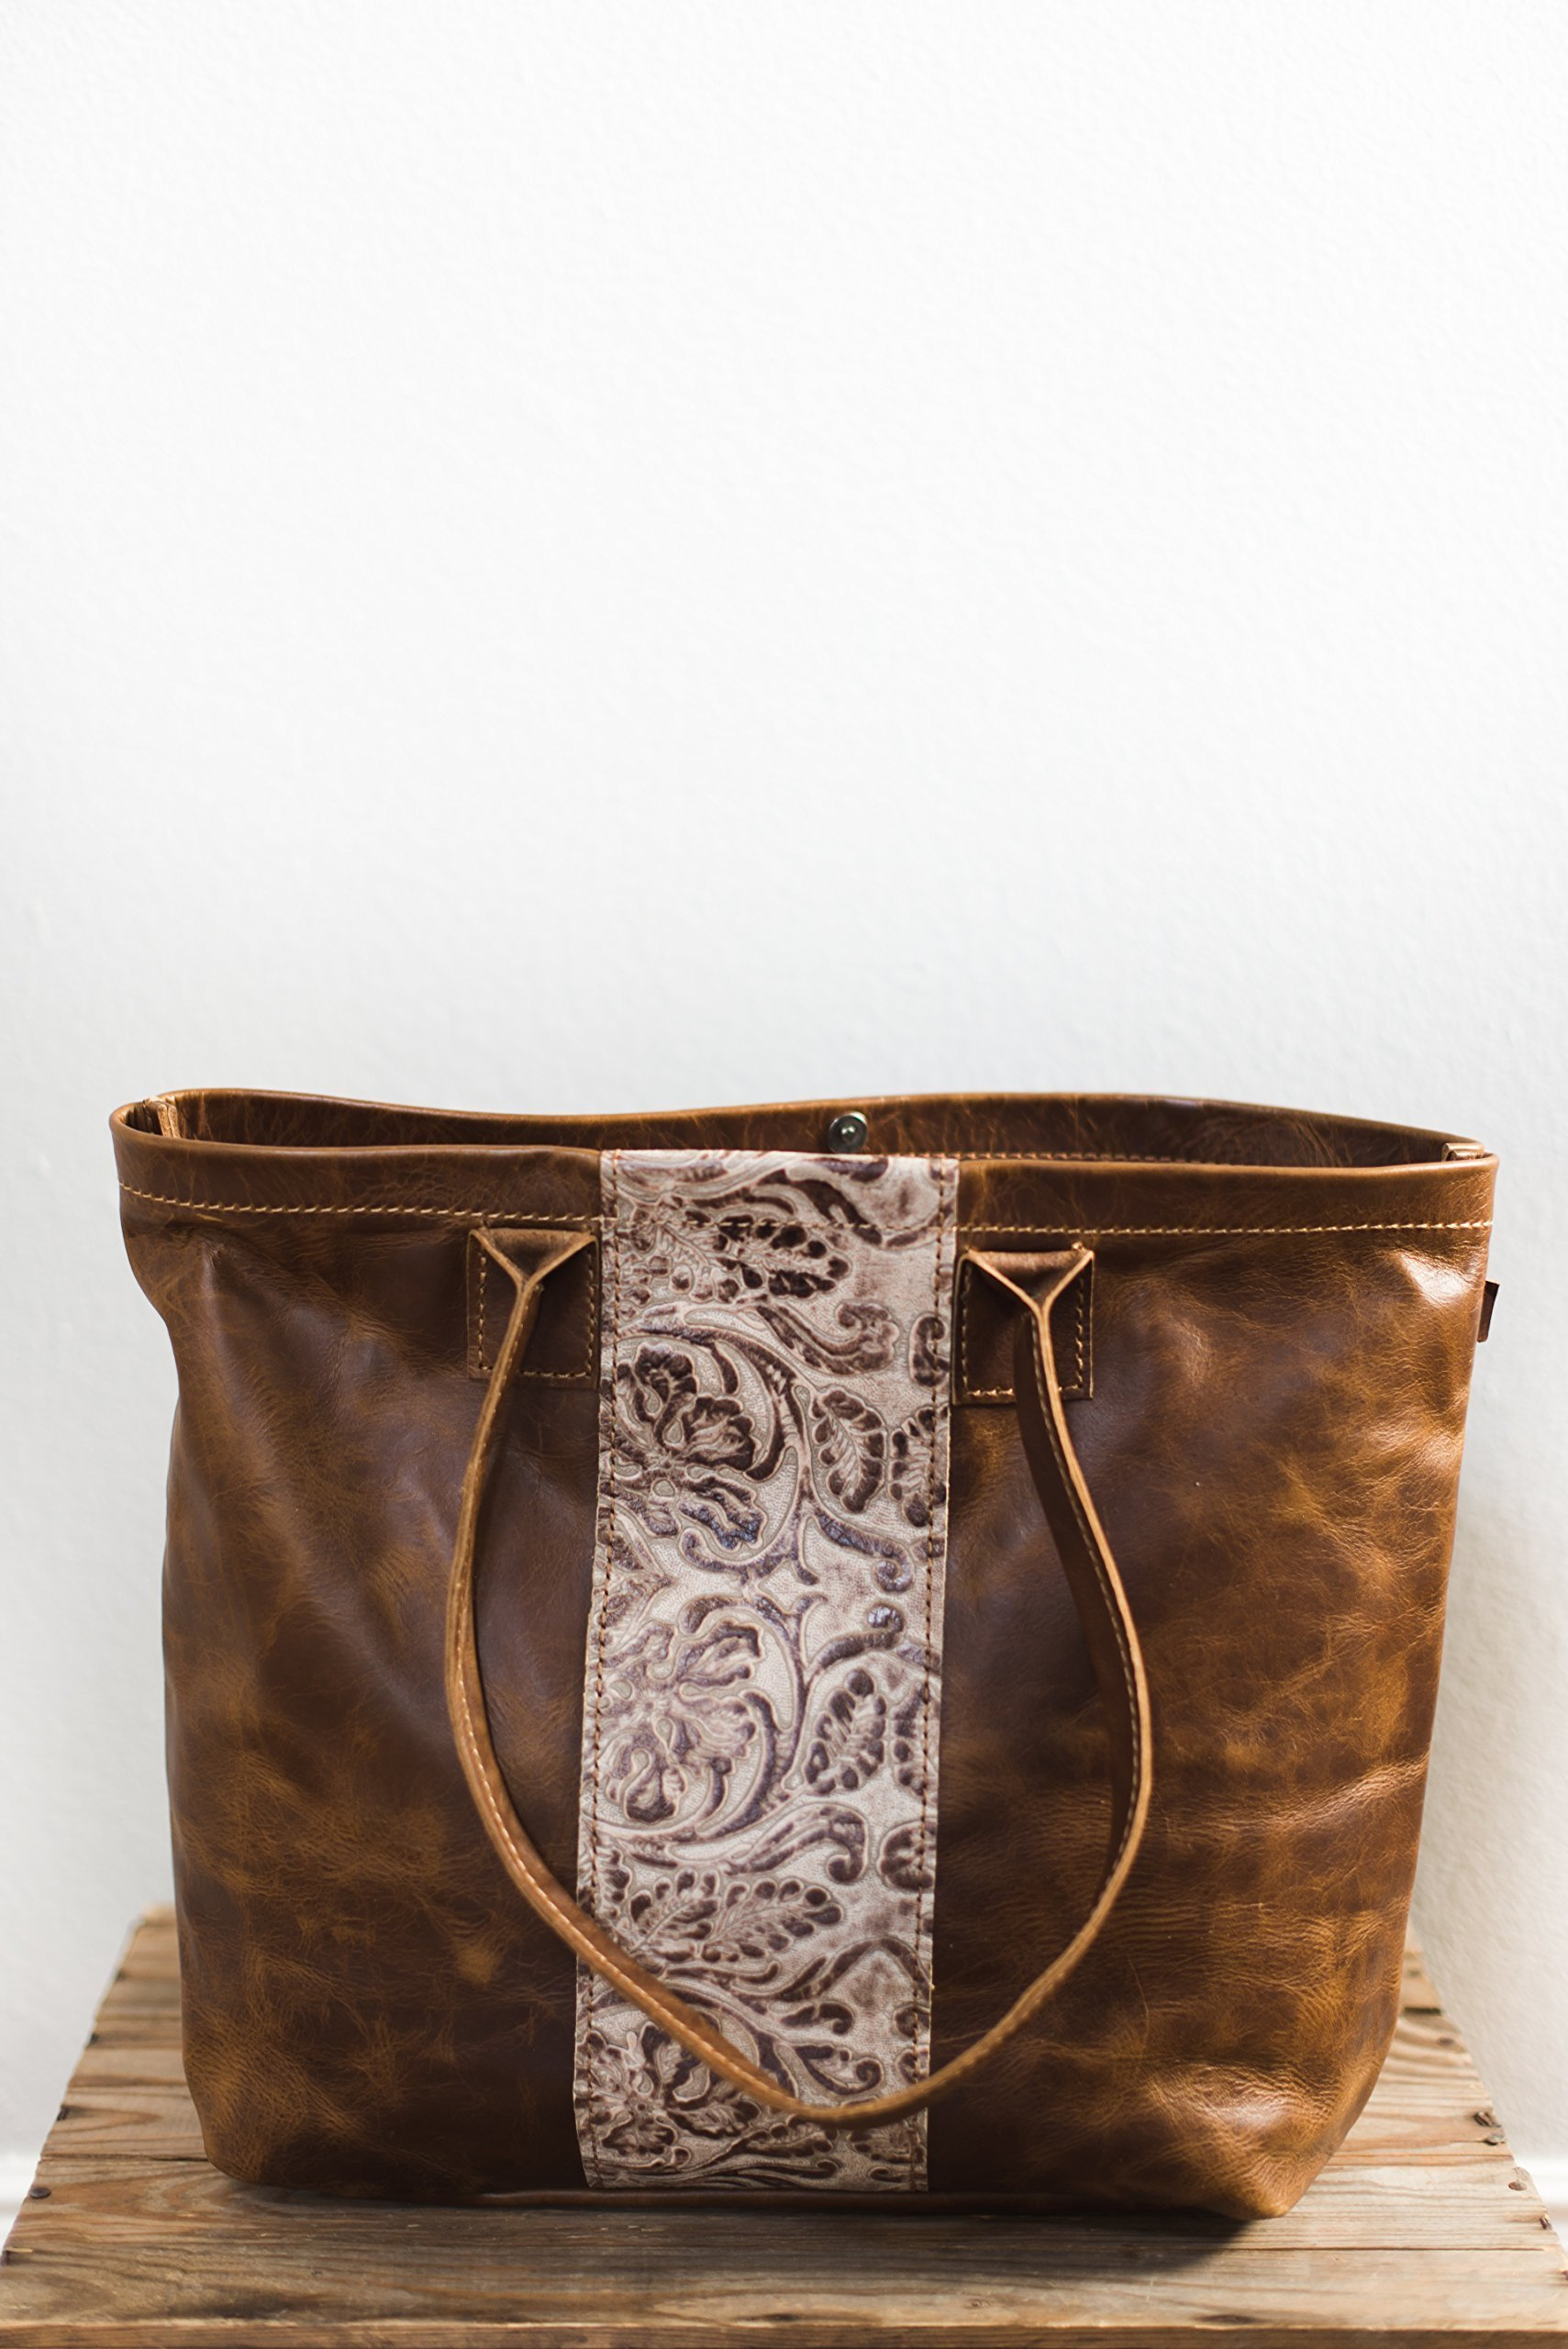 leather tote bag for women, leather tote bag, leather tote handbags for women, leather tote purse, leather tote purse, leather tote laptop, leather handbags, leather shoulder bags.